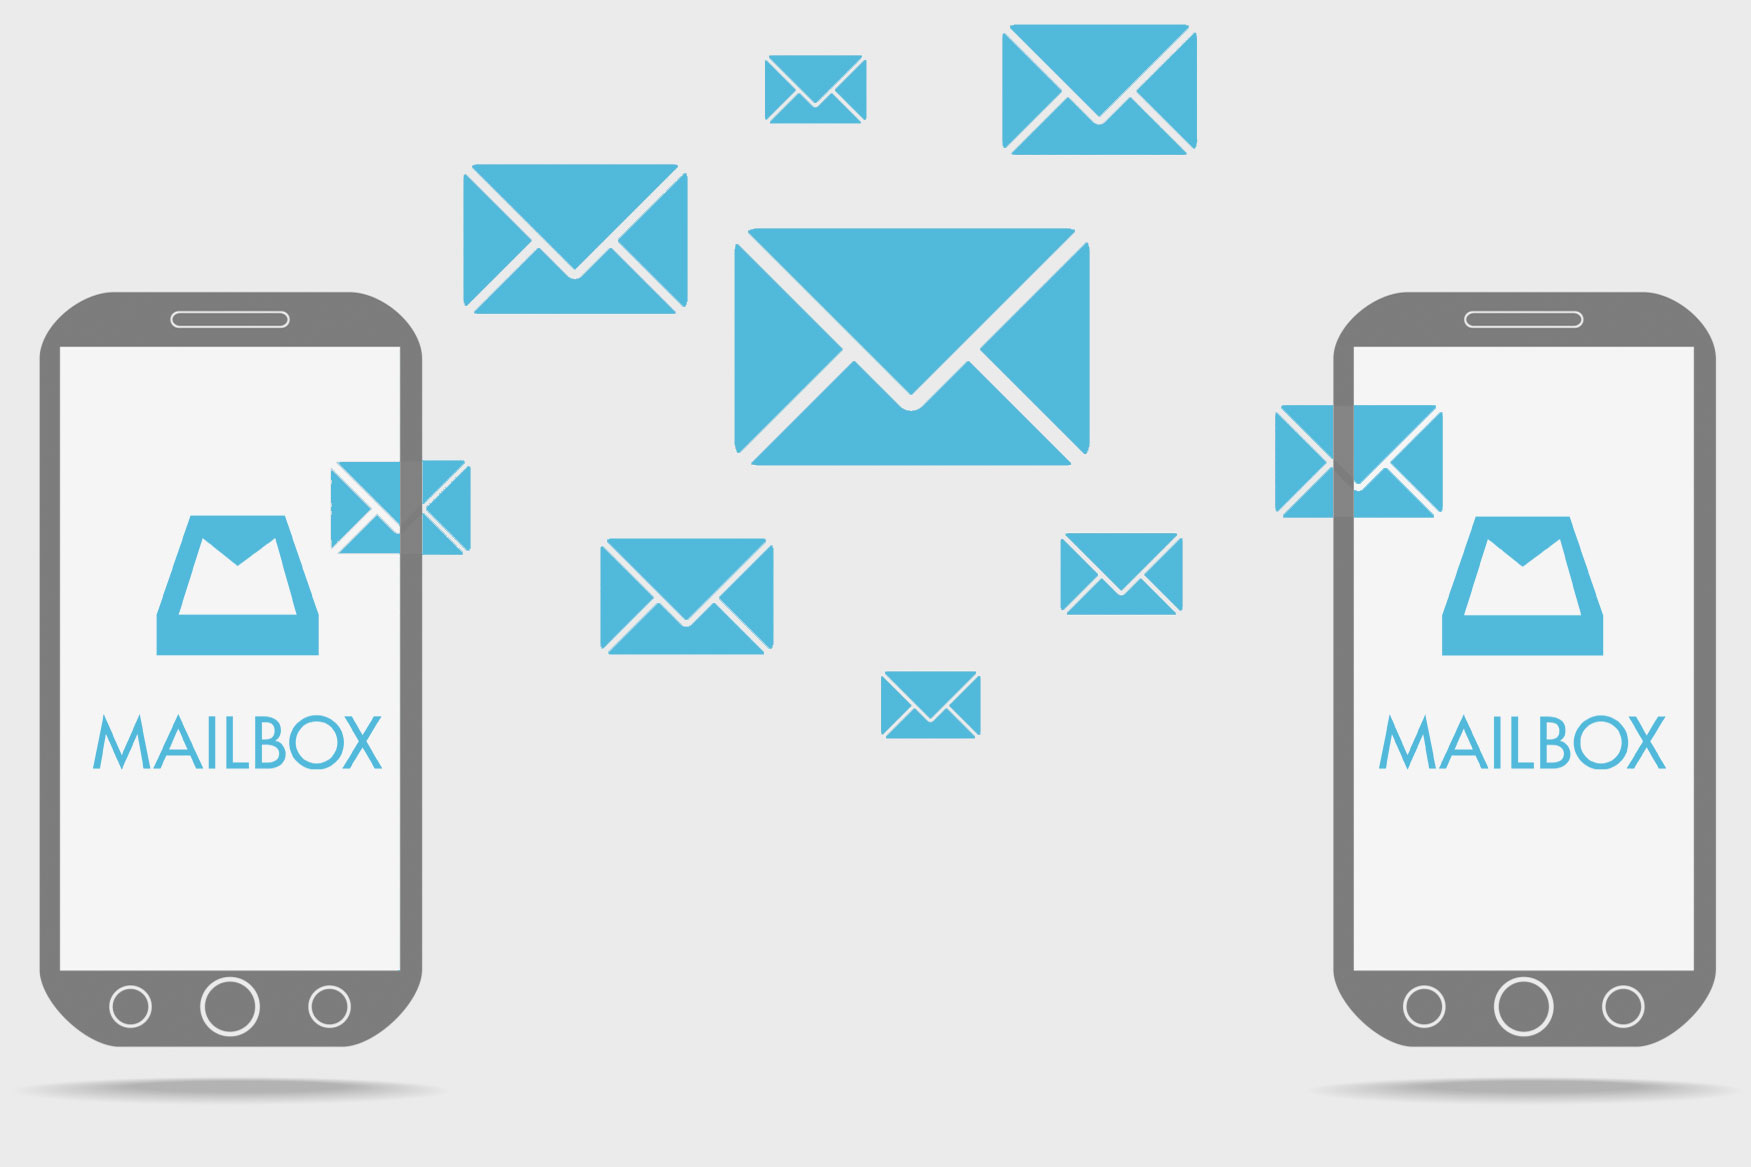 mailbox-feature-image